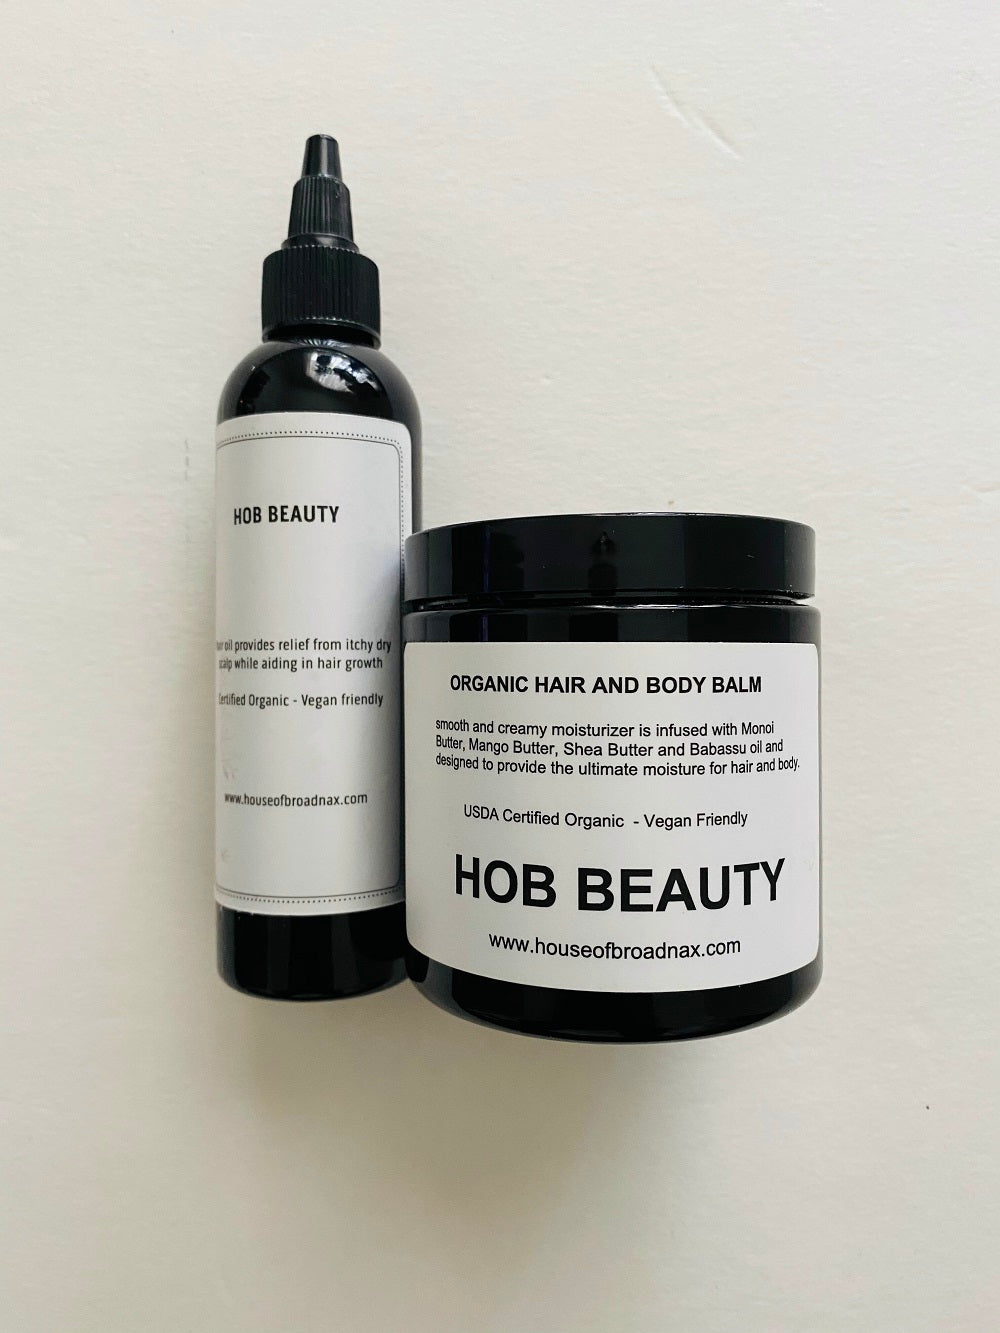 HOB BEAUTY BUNDLE - HOB BRAND